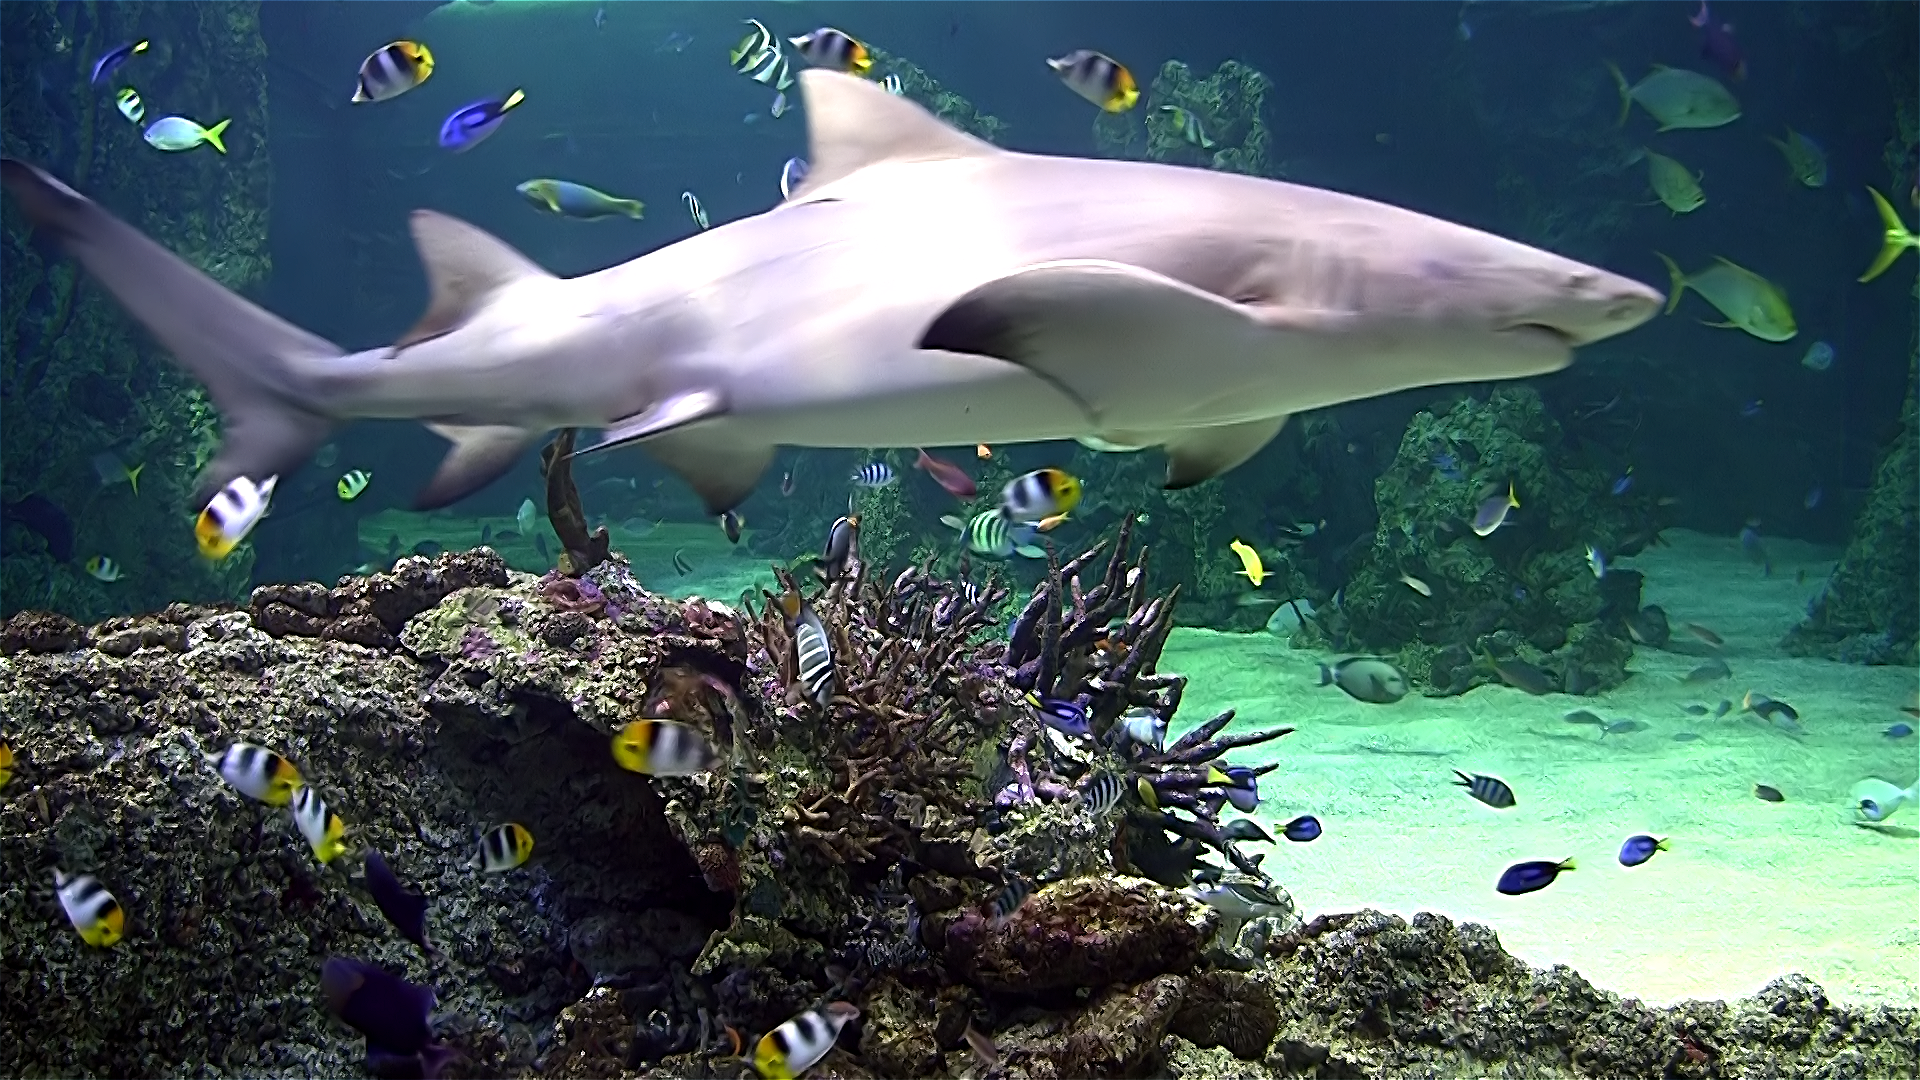 Aquarium live HD TV: Coral reef scenes with relaxing nature & ocean sounds for stress relief screenshot 5